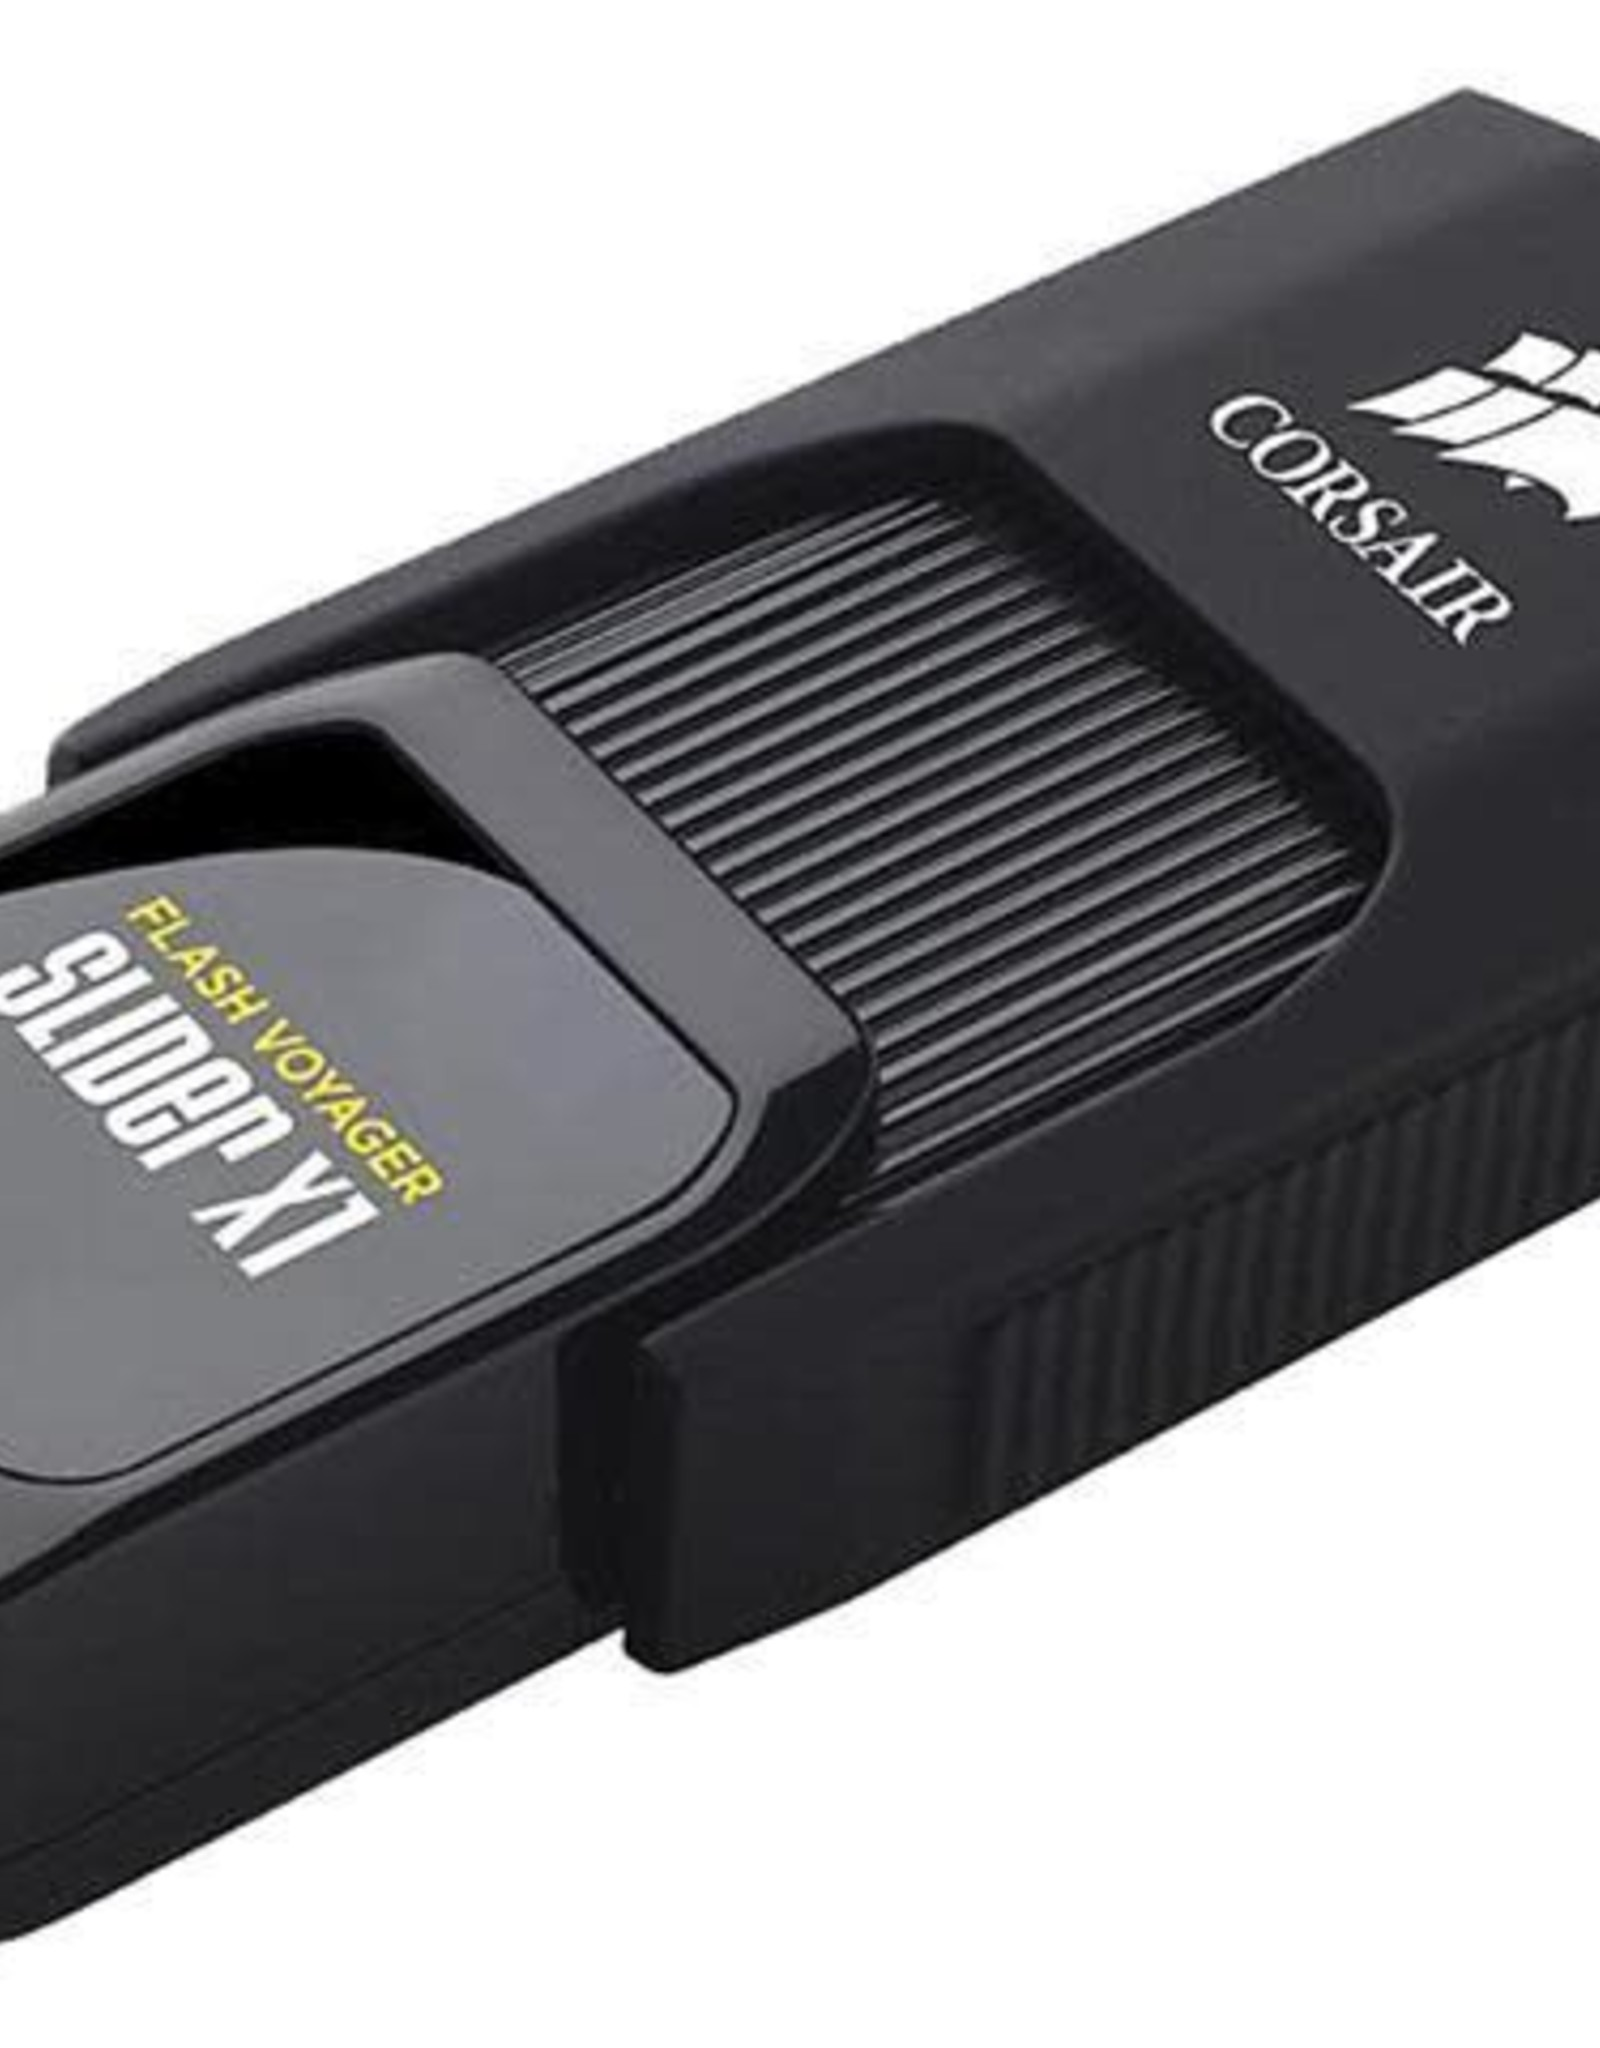 Corsair Corsair SLIDER X1 USB 3.0 128GB, CAPLESS DESIGN CMFSL3X1-128GB